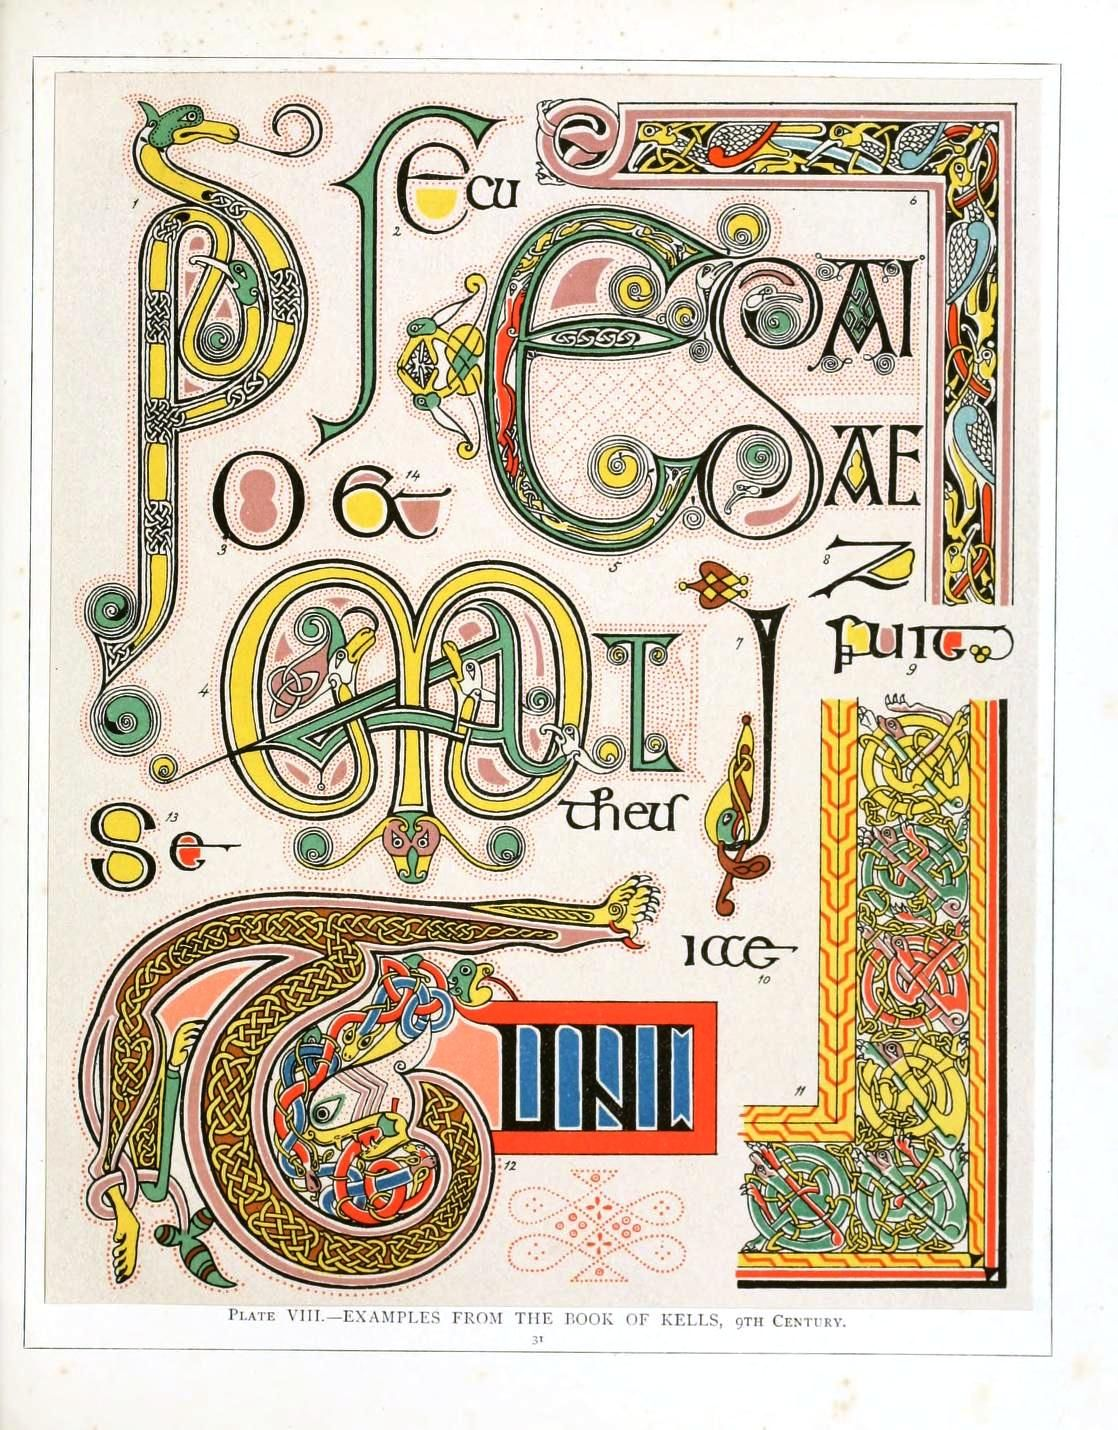 From The Book Of Kells 9th Century Irish And Anglo